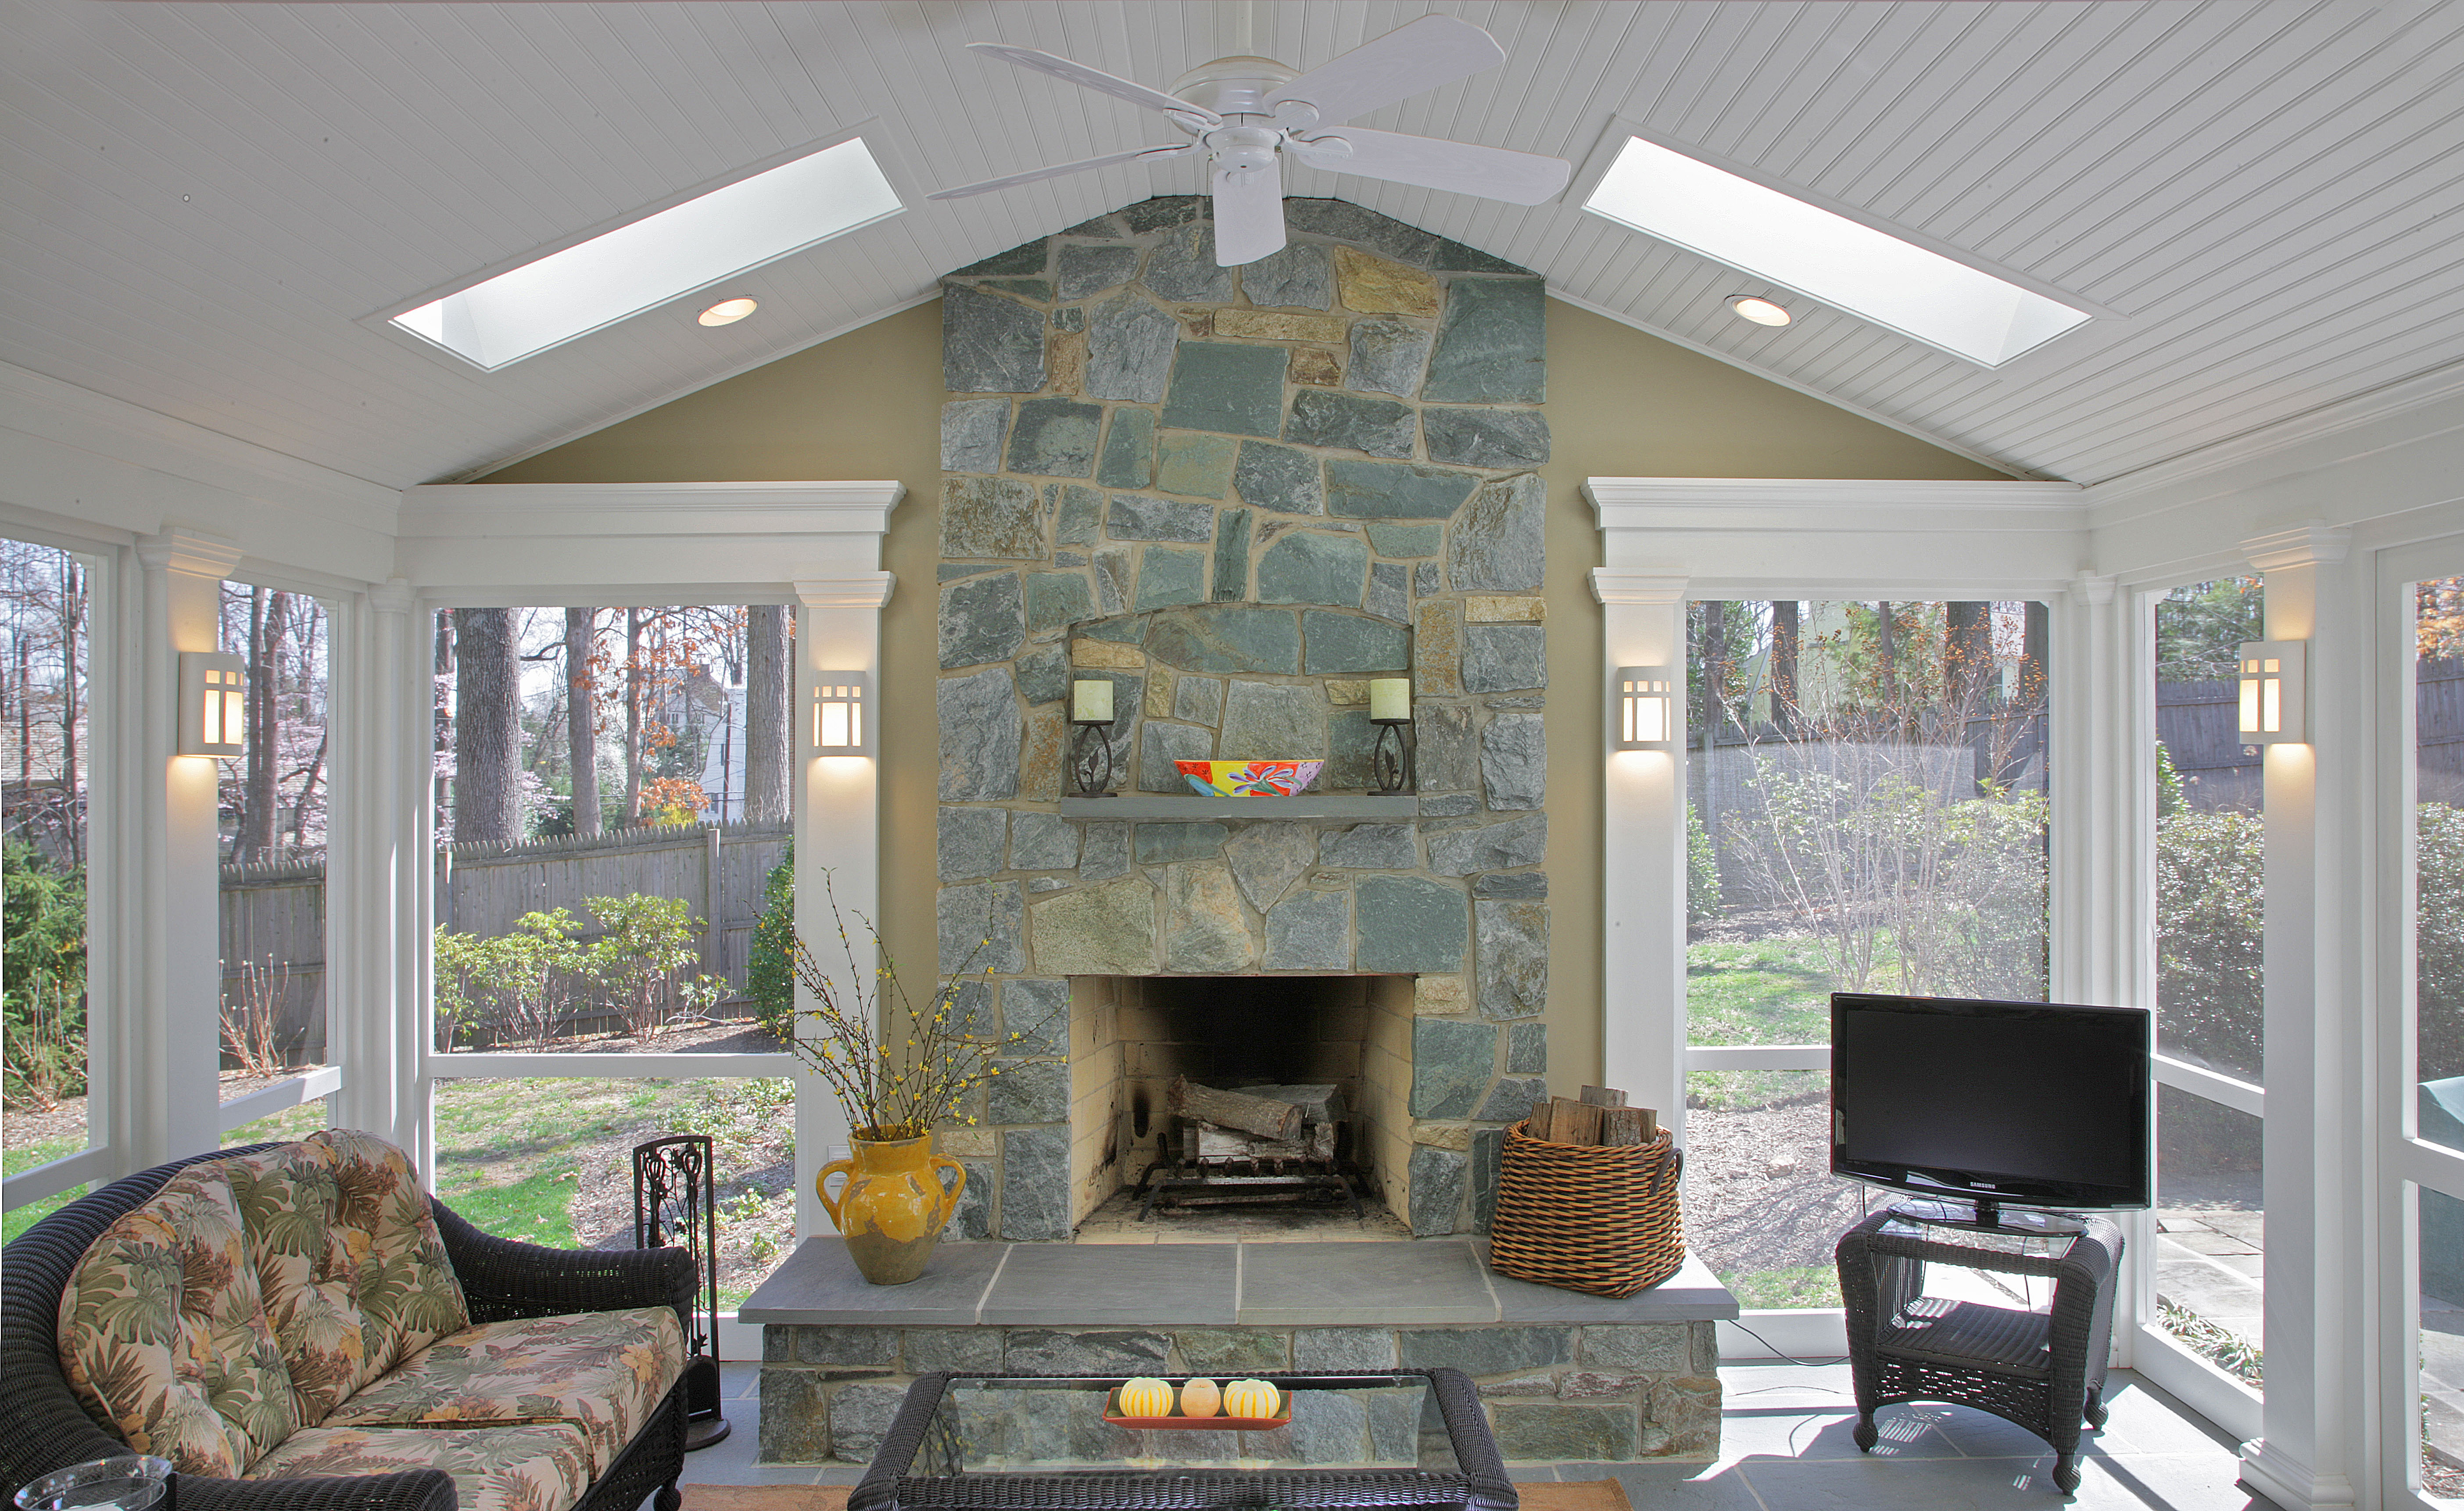 Front View of Stone Fireplace